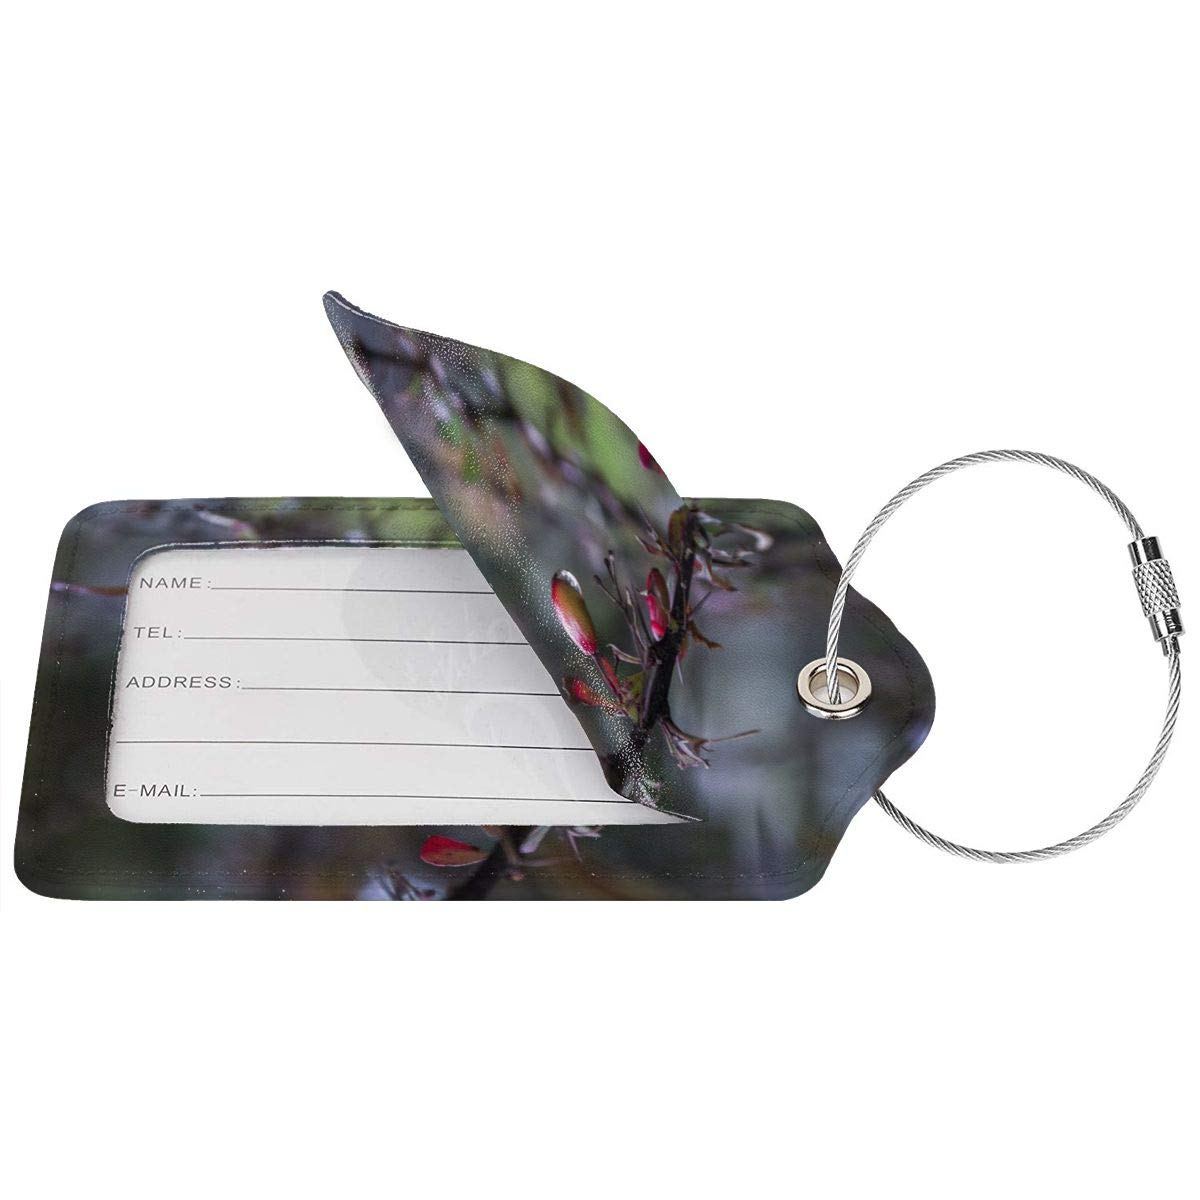 Plants Berries Travel Luggage Tags With Full Privacy Cover Leather Case And Stainless Steel Loop